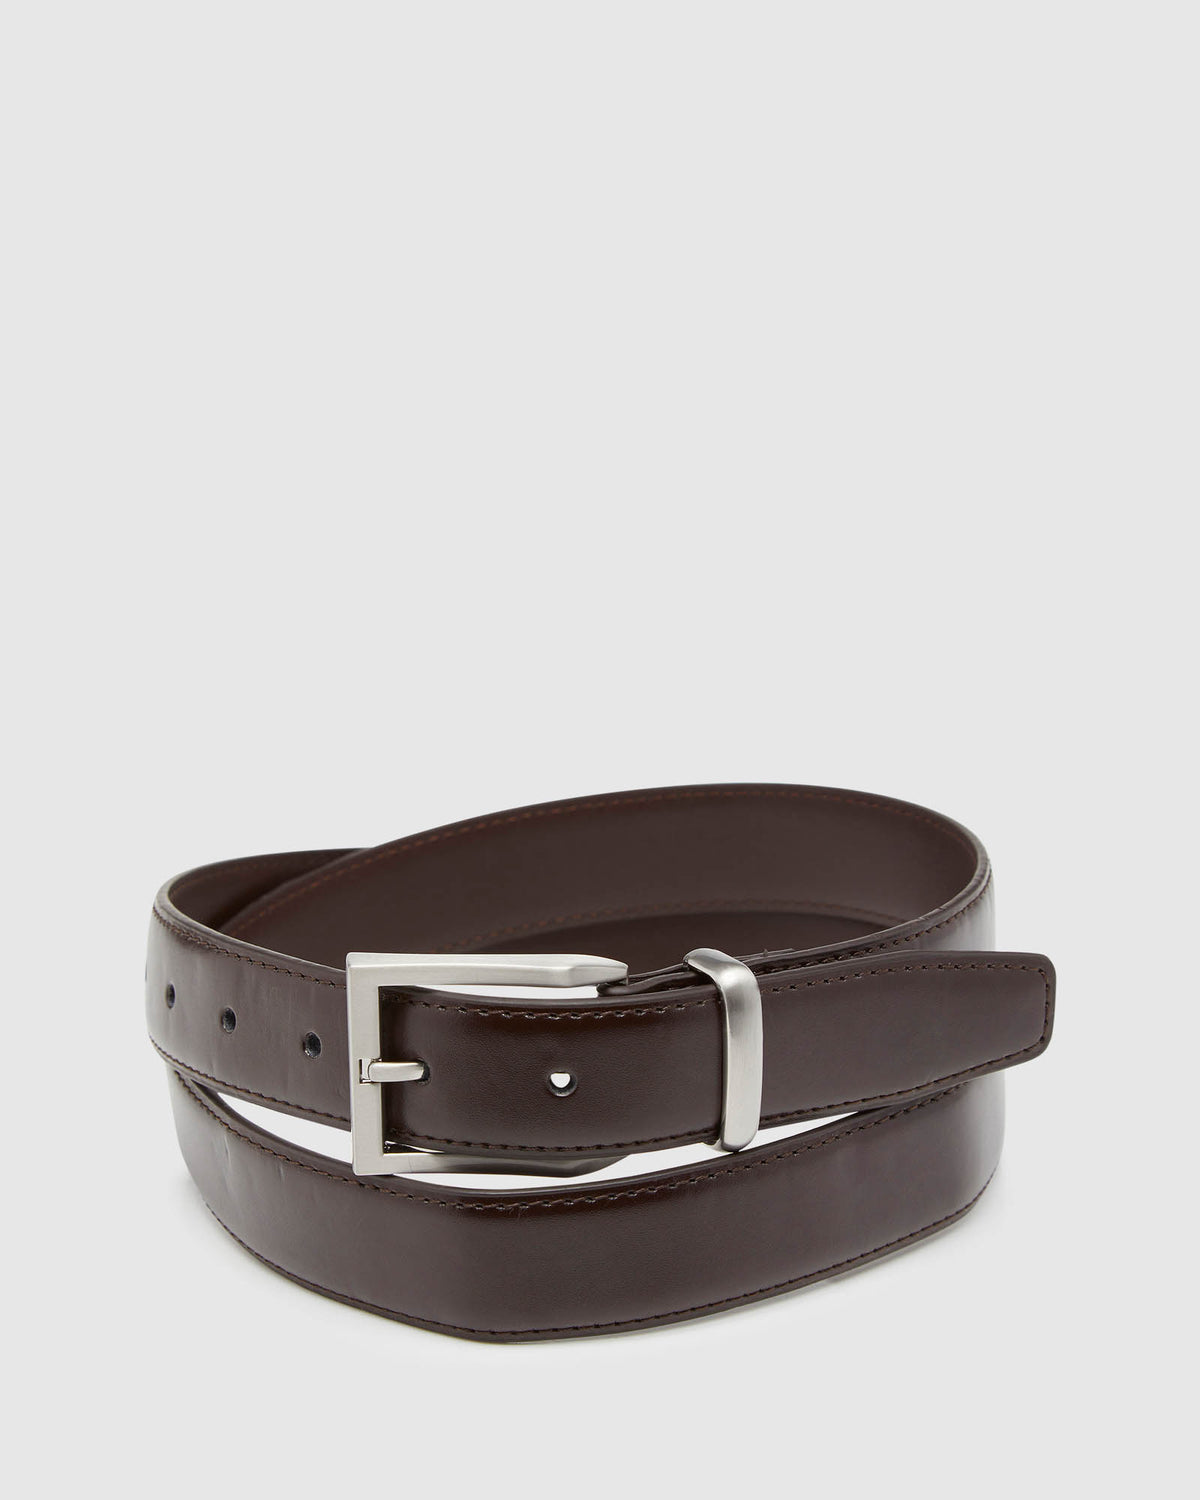 ARLEN LEATHER BELT CHOCOLATE